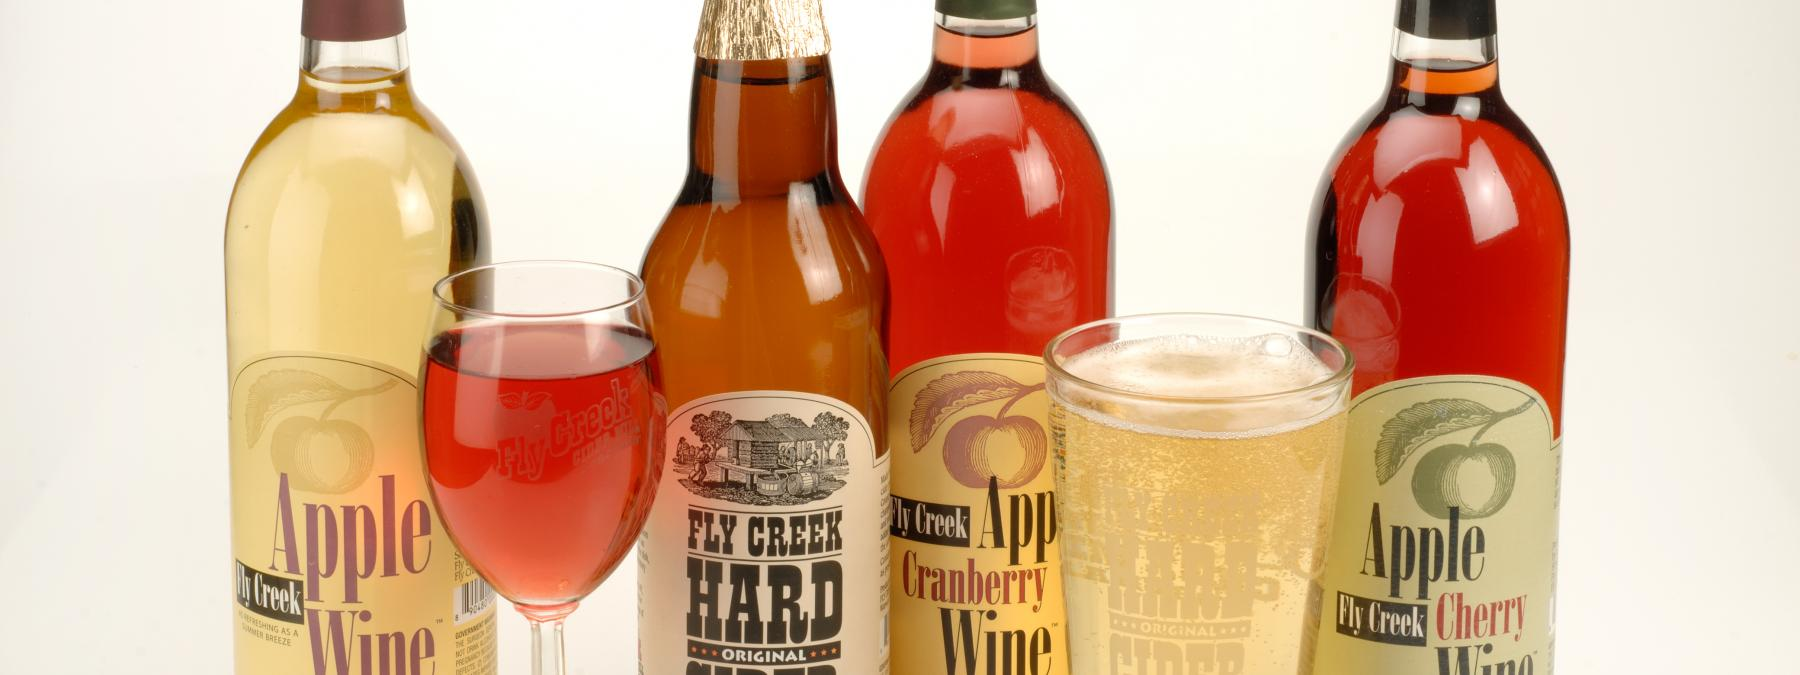 Apple Wines and Hard Ciders